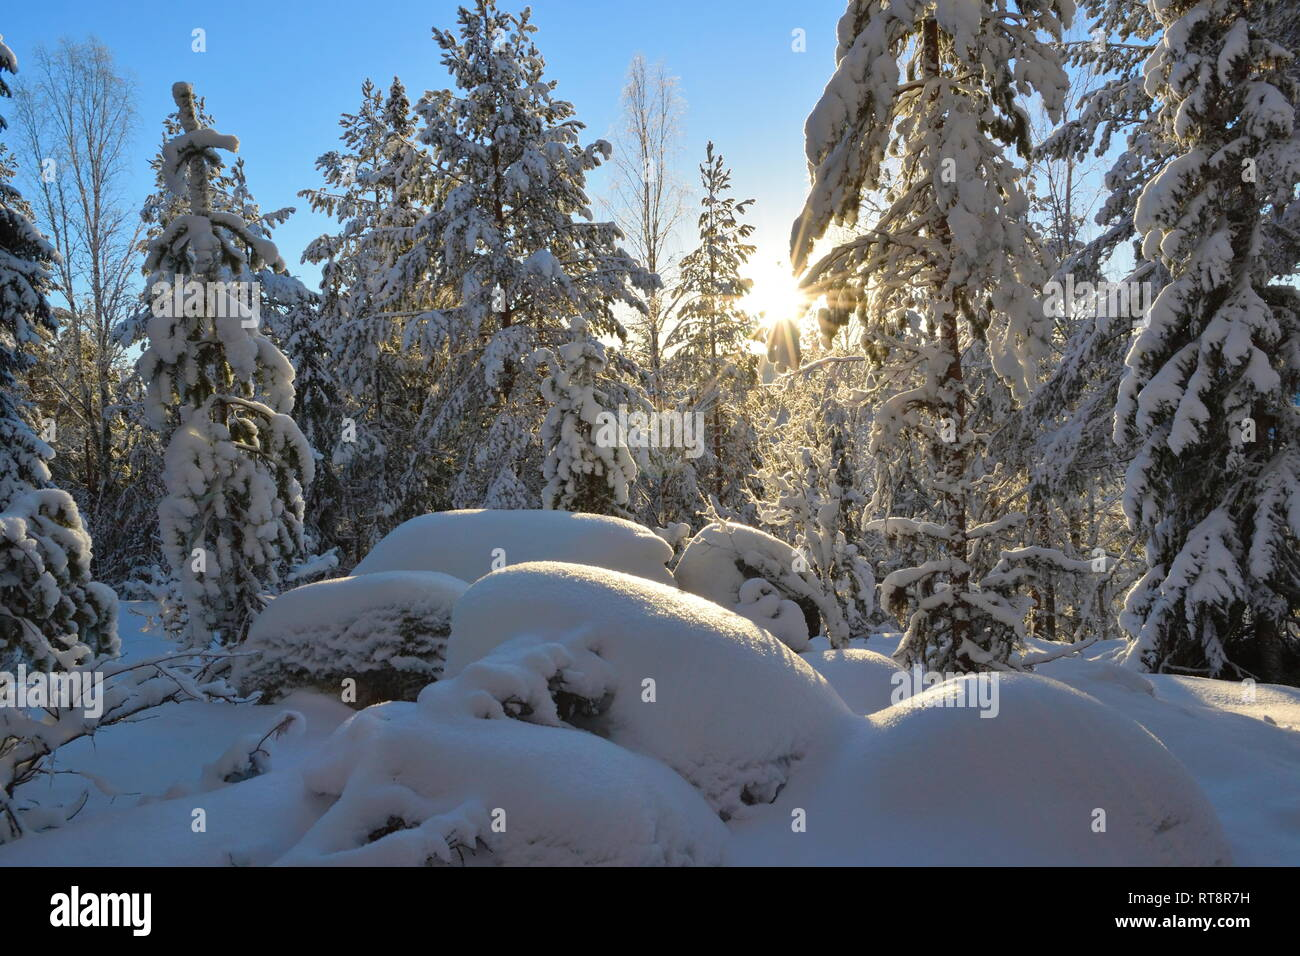 The low golden winter sun is shining through the snow-covered trees in a softwood forest. Stock Photo